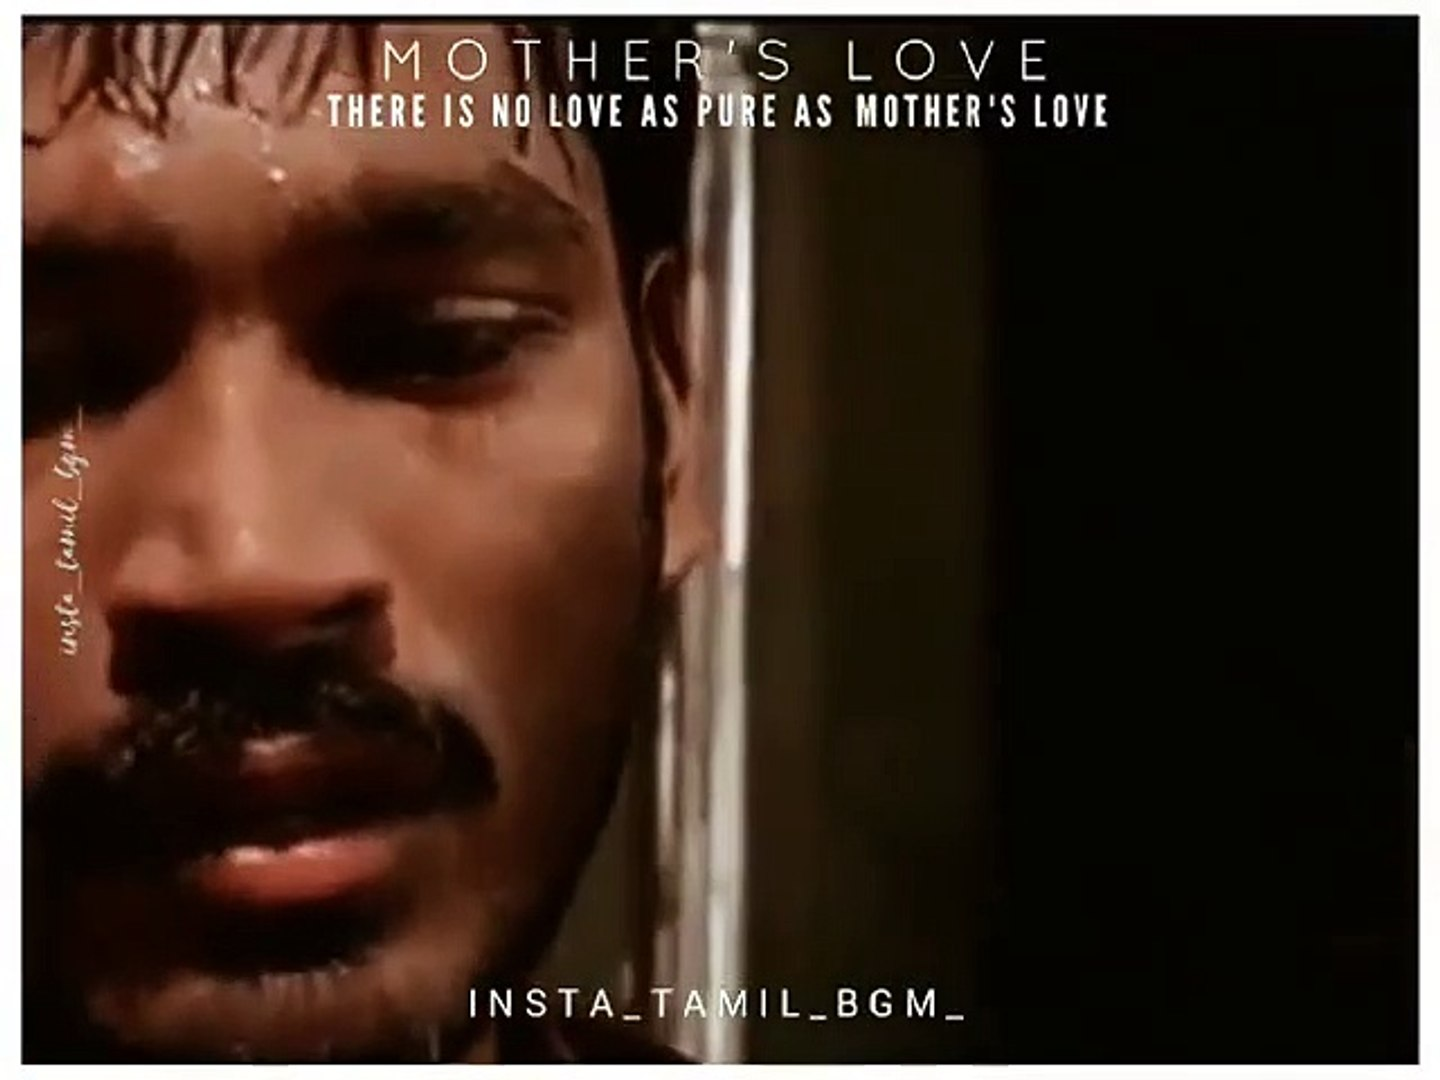 Dhanush Dialogue About Mothers Love For Whatsapp Statusvj Entertainment